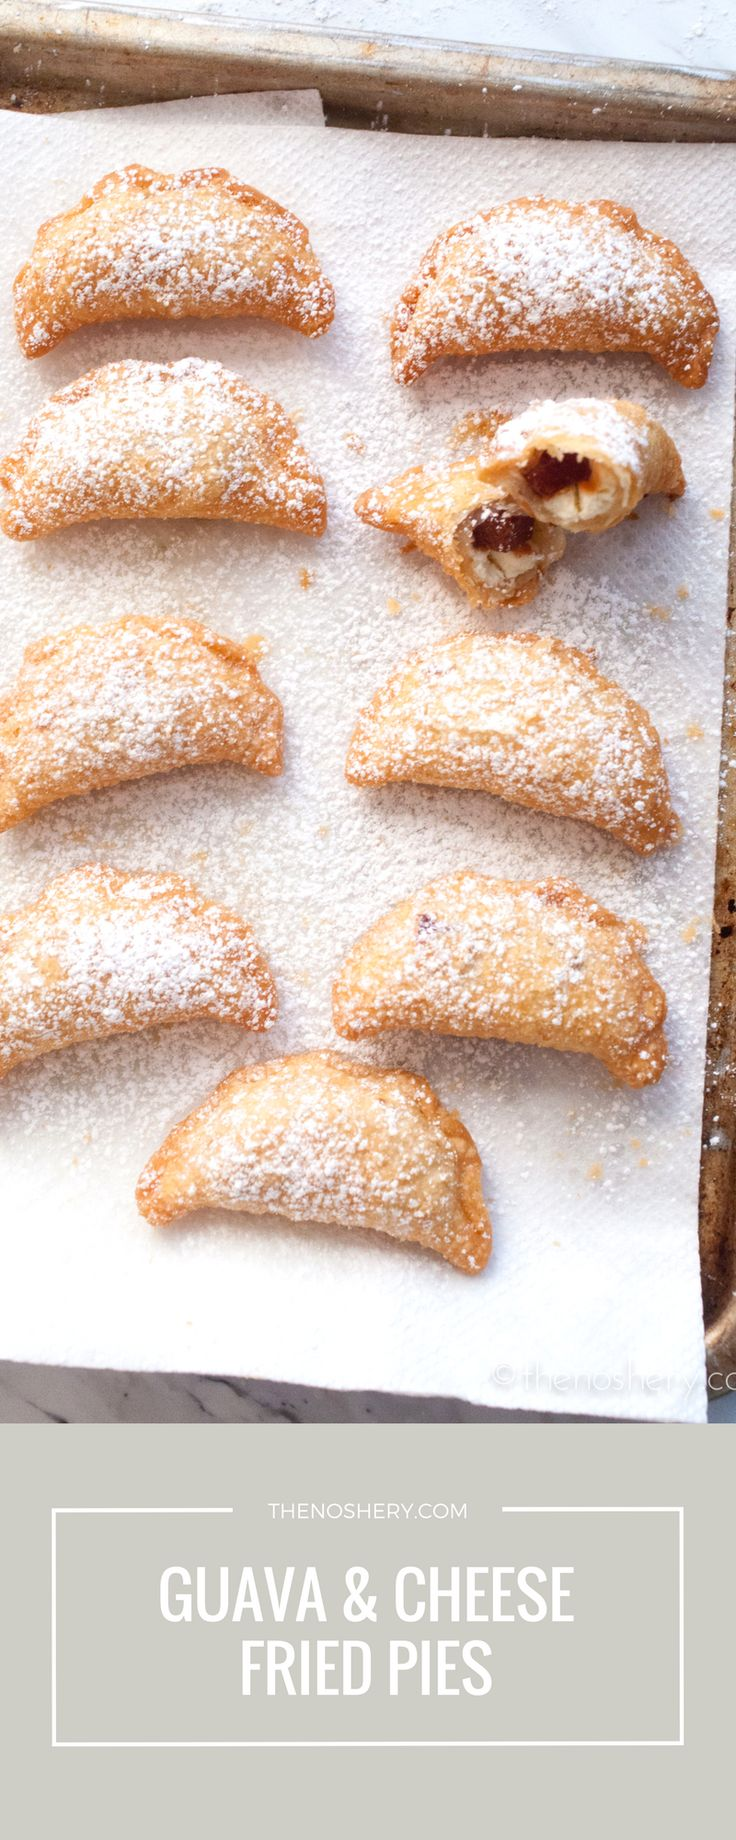 Guava And Cheese Mini Fried Pies